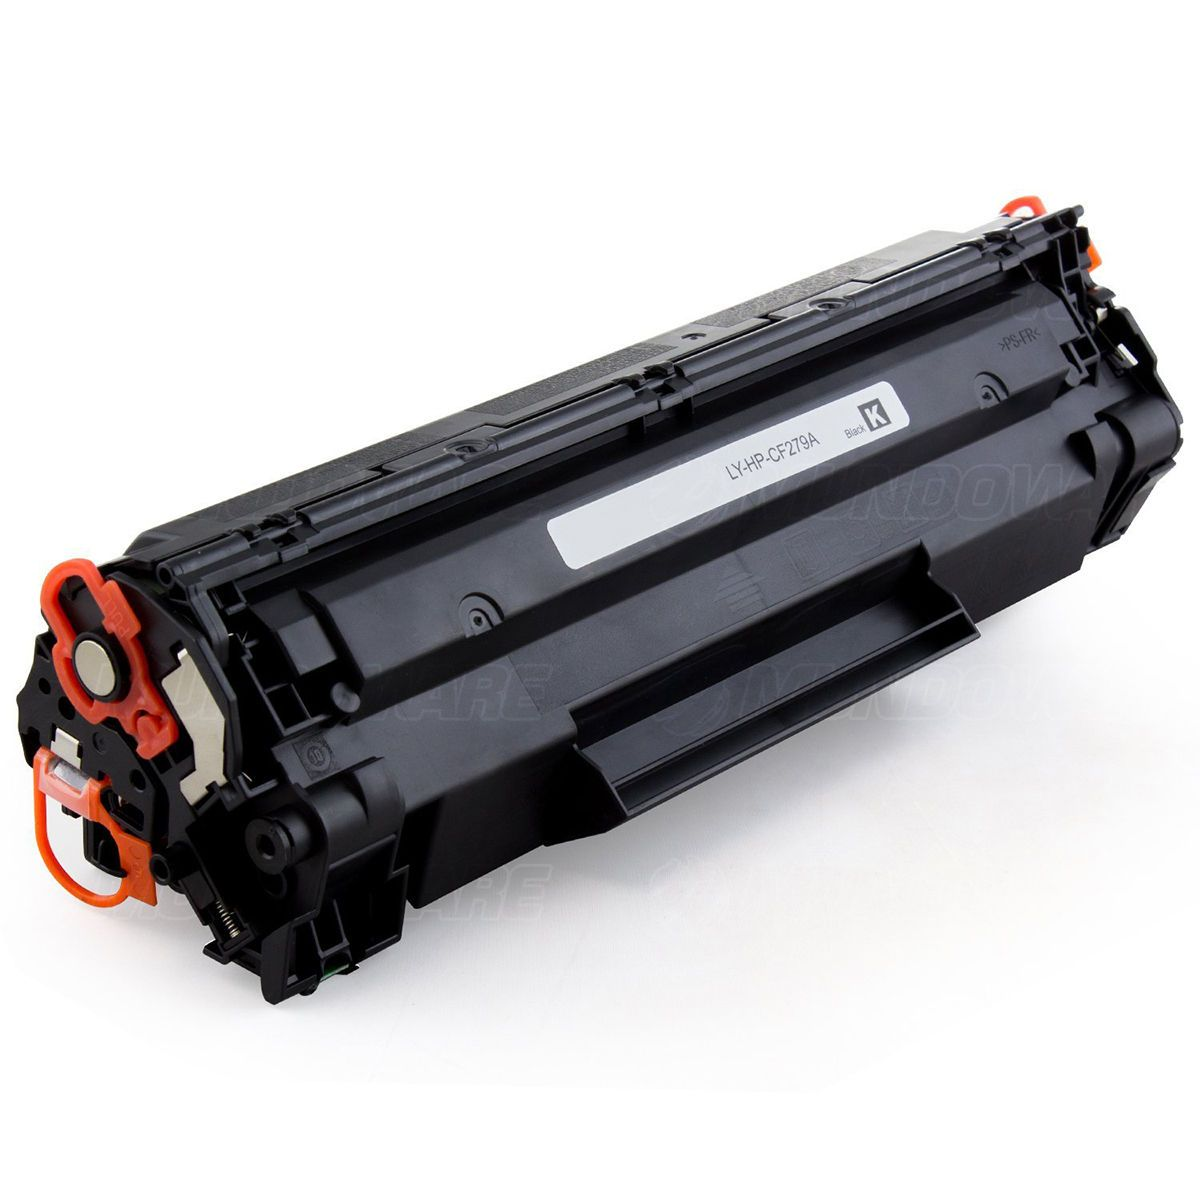 TONER HP CF279A ,79A,79, COMPATÍVEL  | M12 M26 M12A M12W M26A M26NW 12A 12W 26A 26NW 279